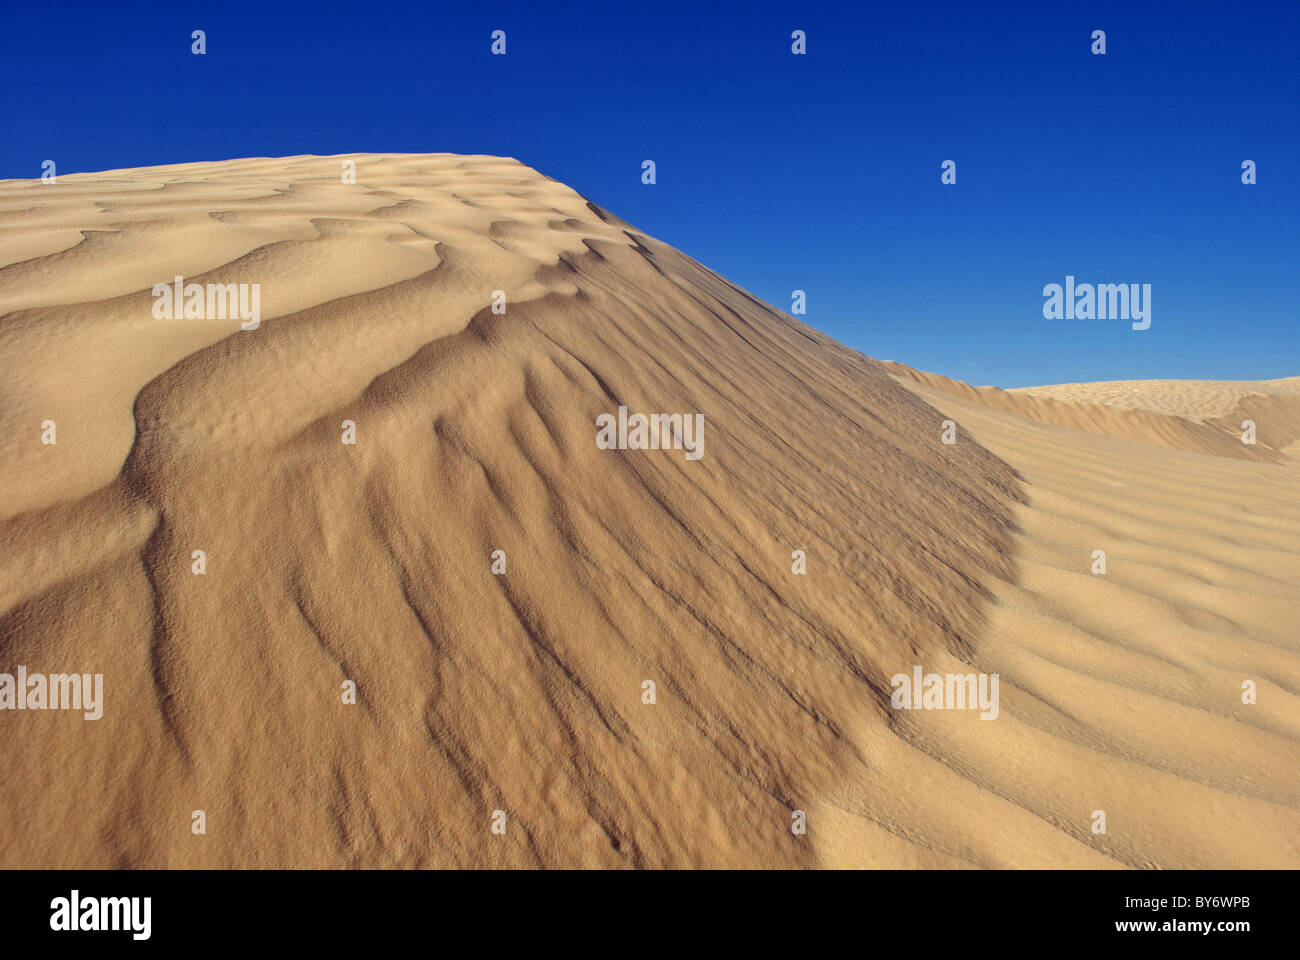 Sand dunes in the Sahara desert (Great Eastern Erg) near Douz, Tunisia - Stock Image